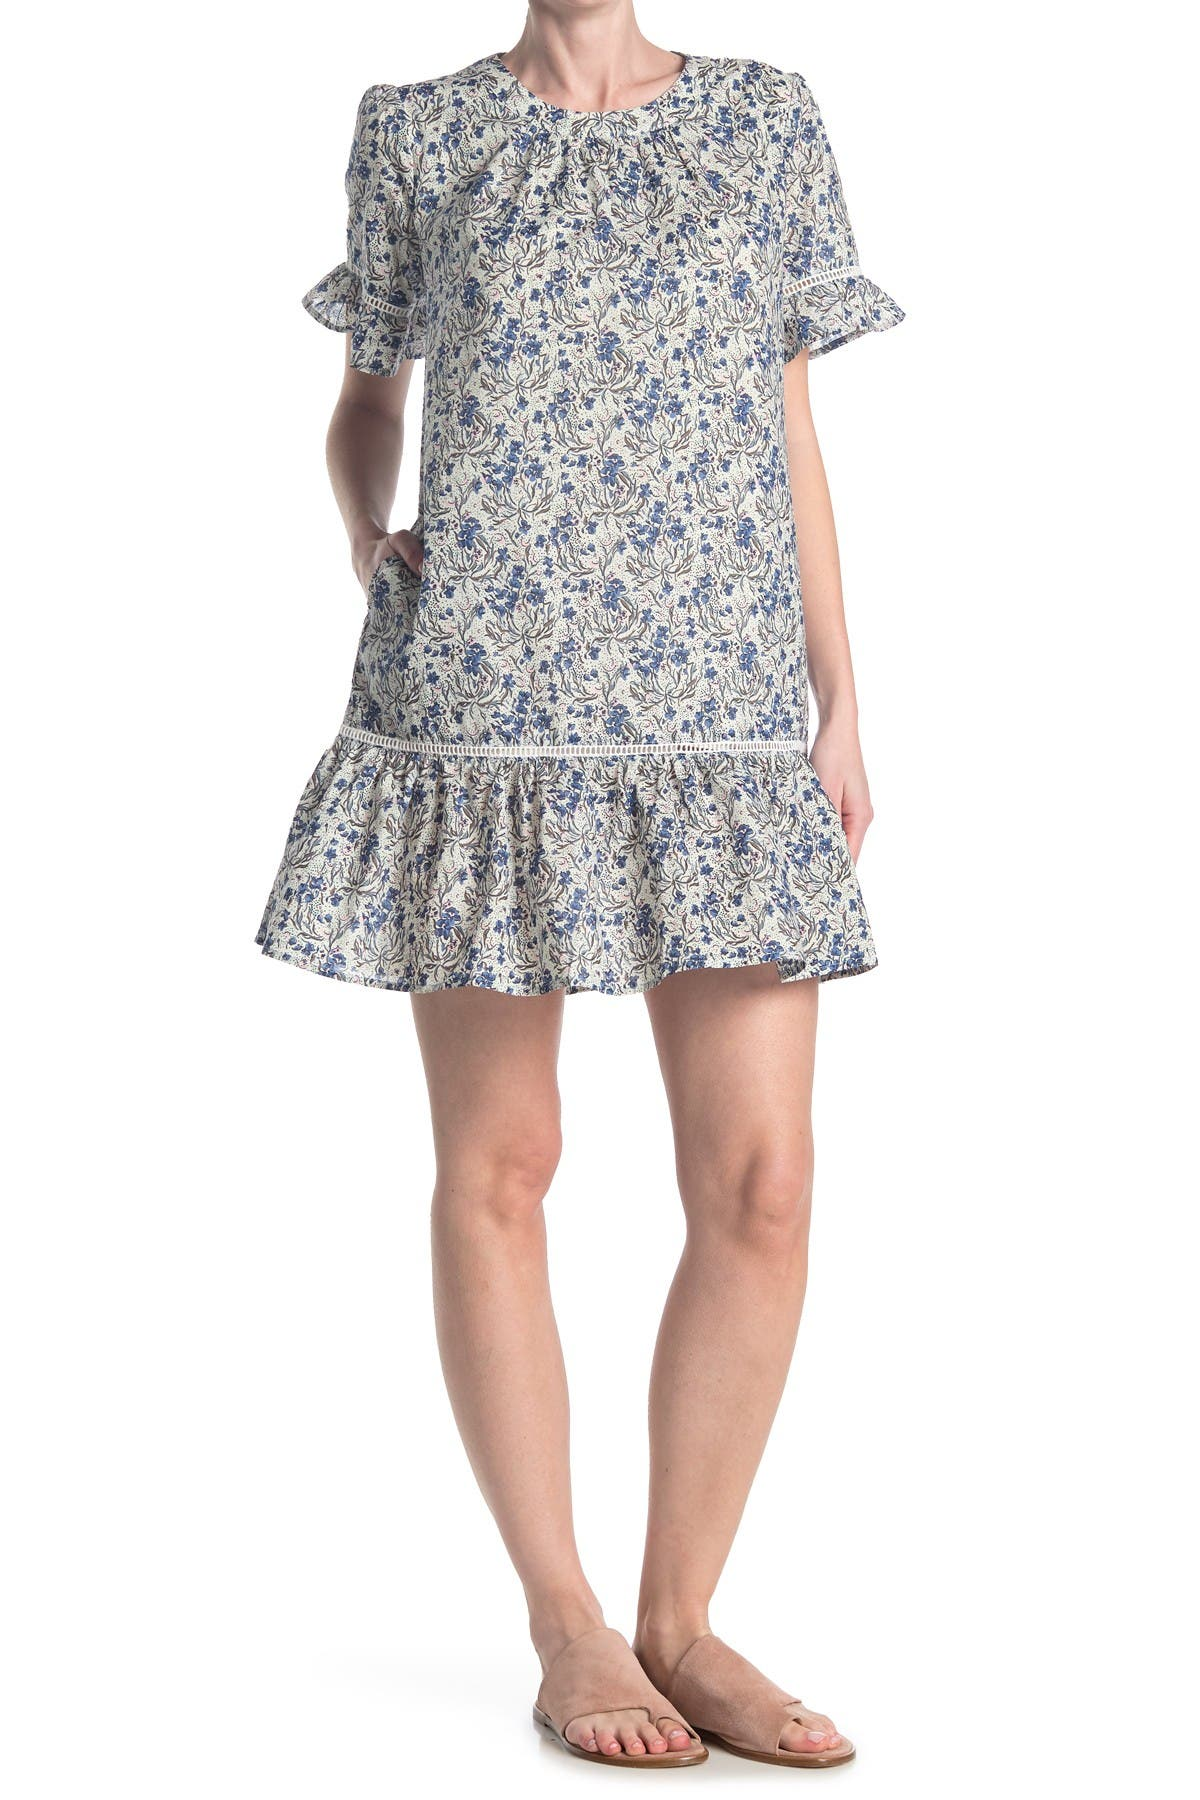 Image of MELLODAY Floral Ruffle Trim Shift Dress